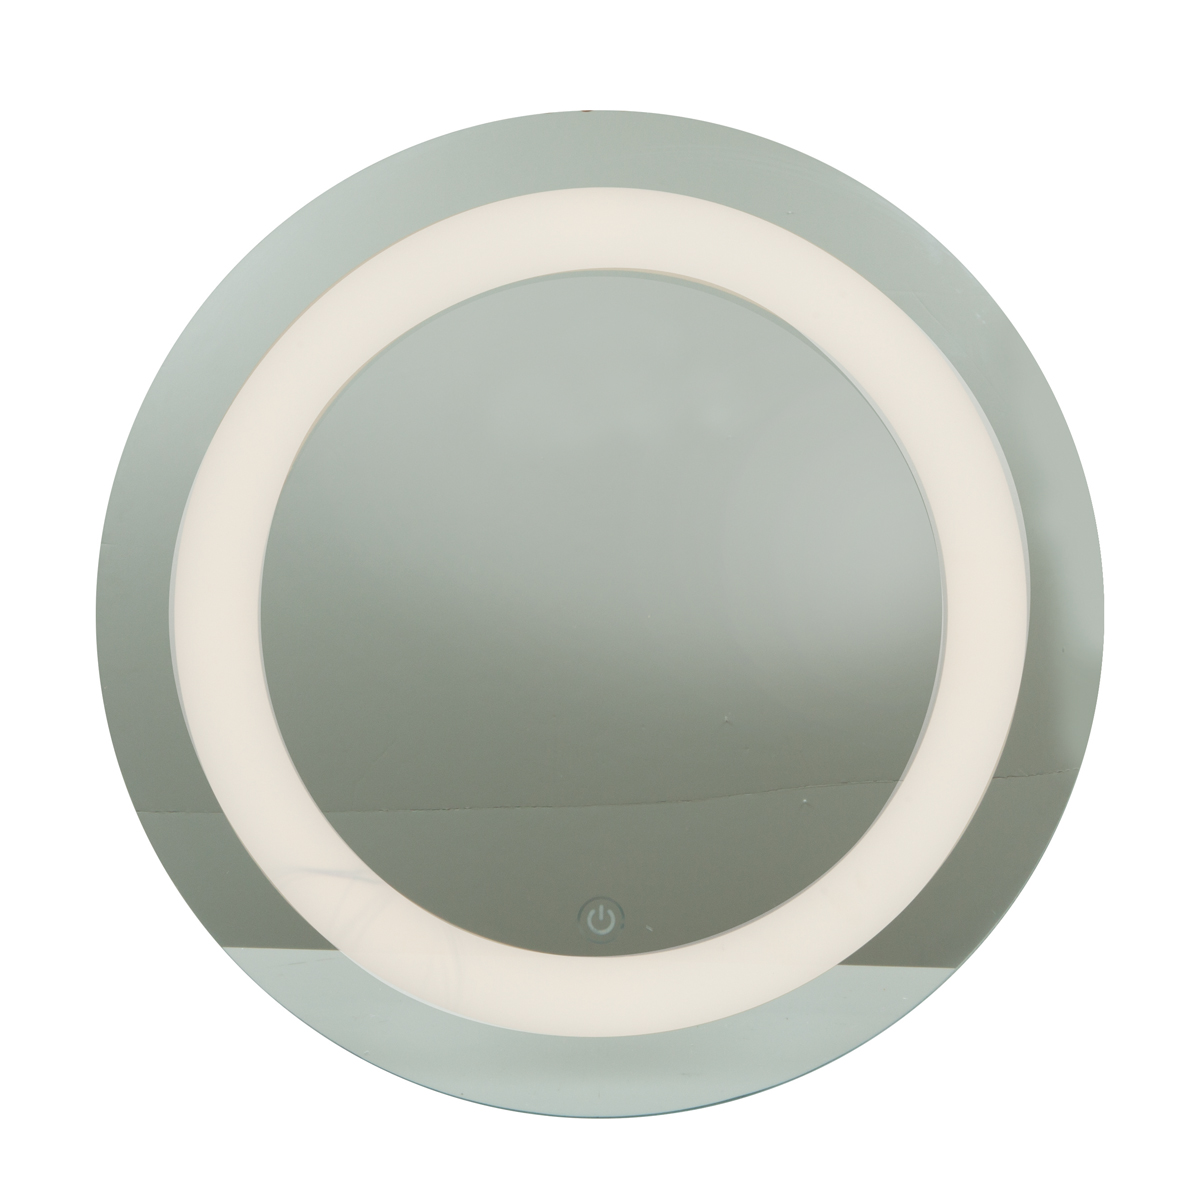 round vanity mirror with lights images. Black Bedroom Furniture Sets. Home Design Ideas